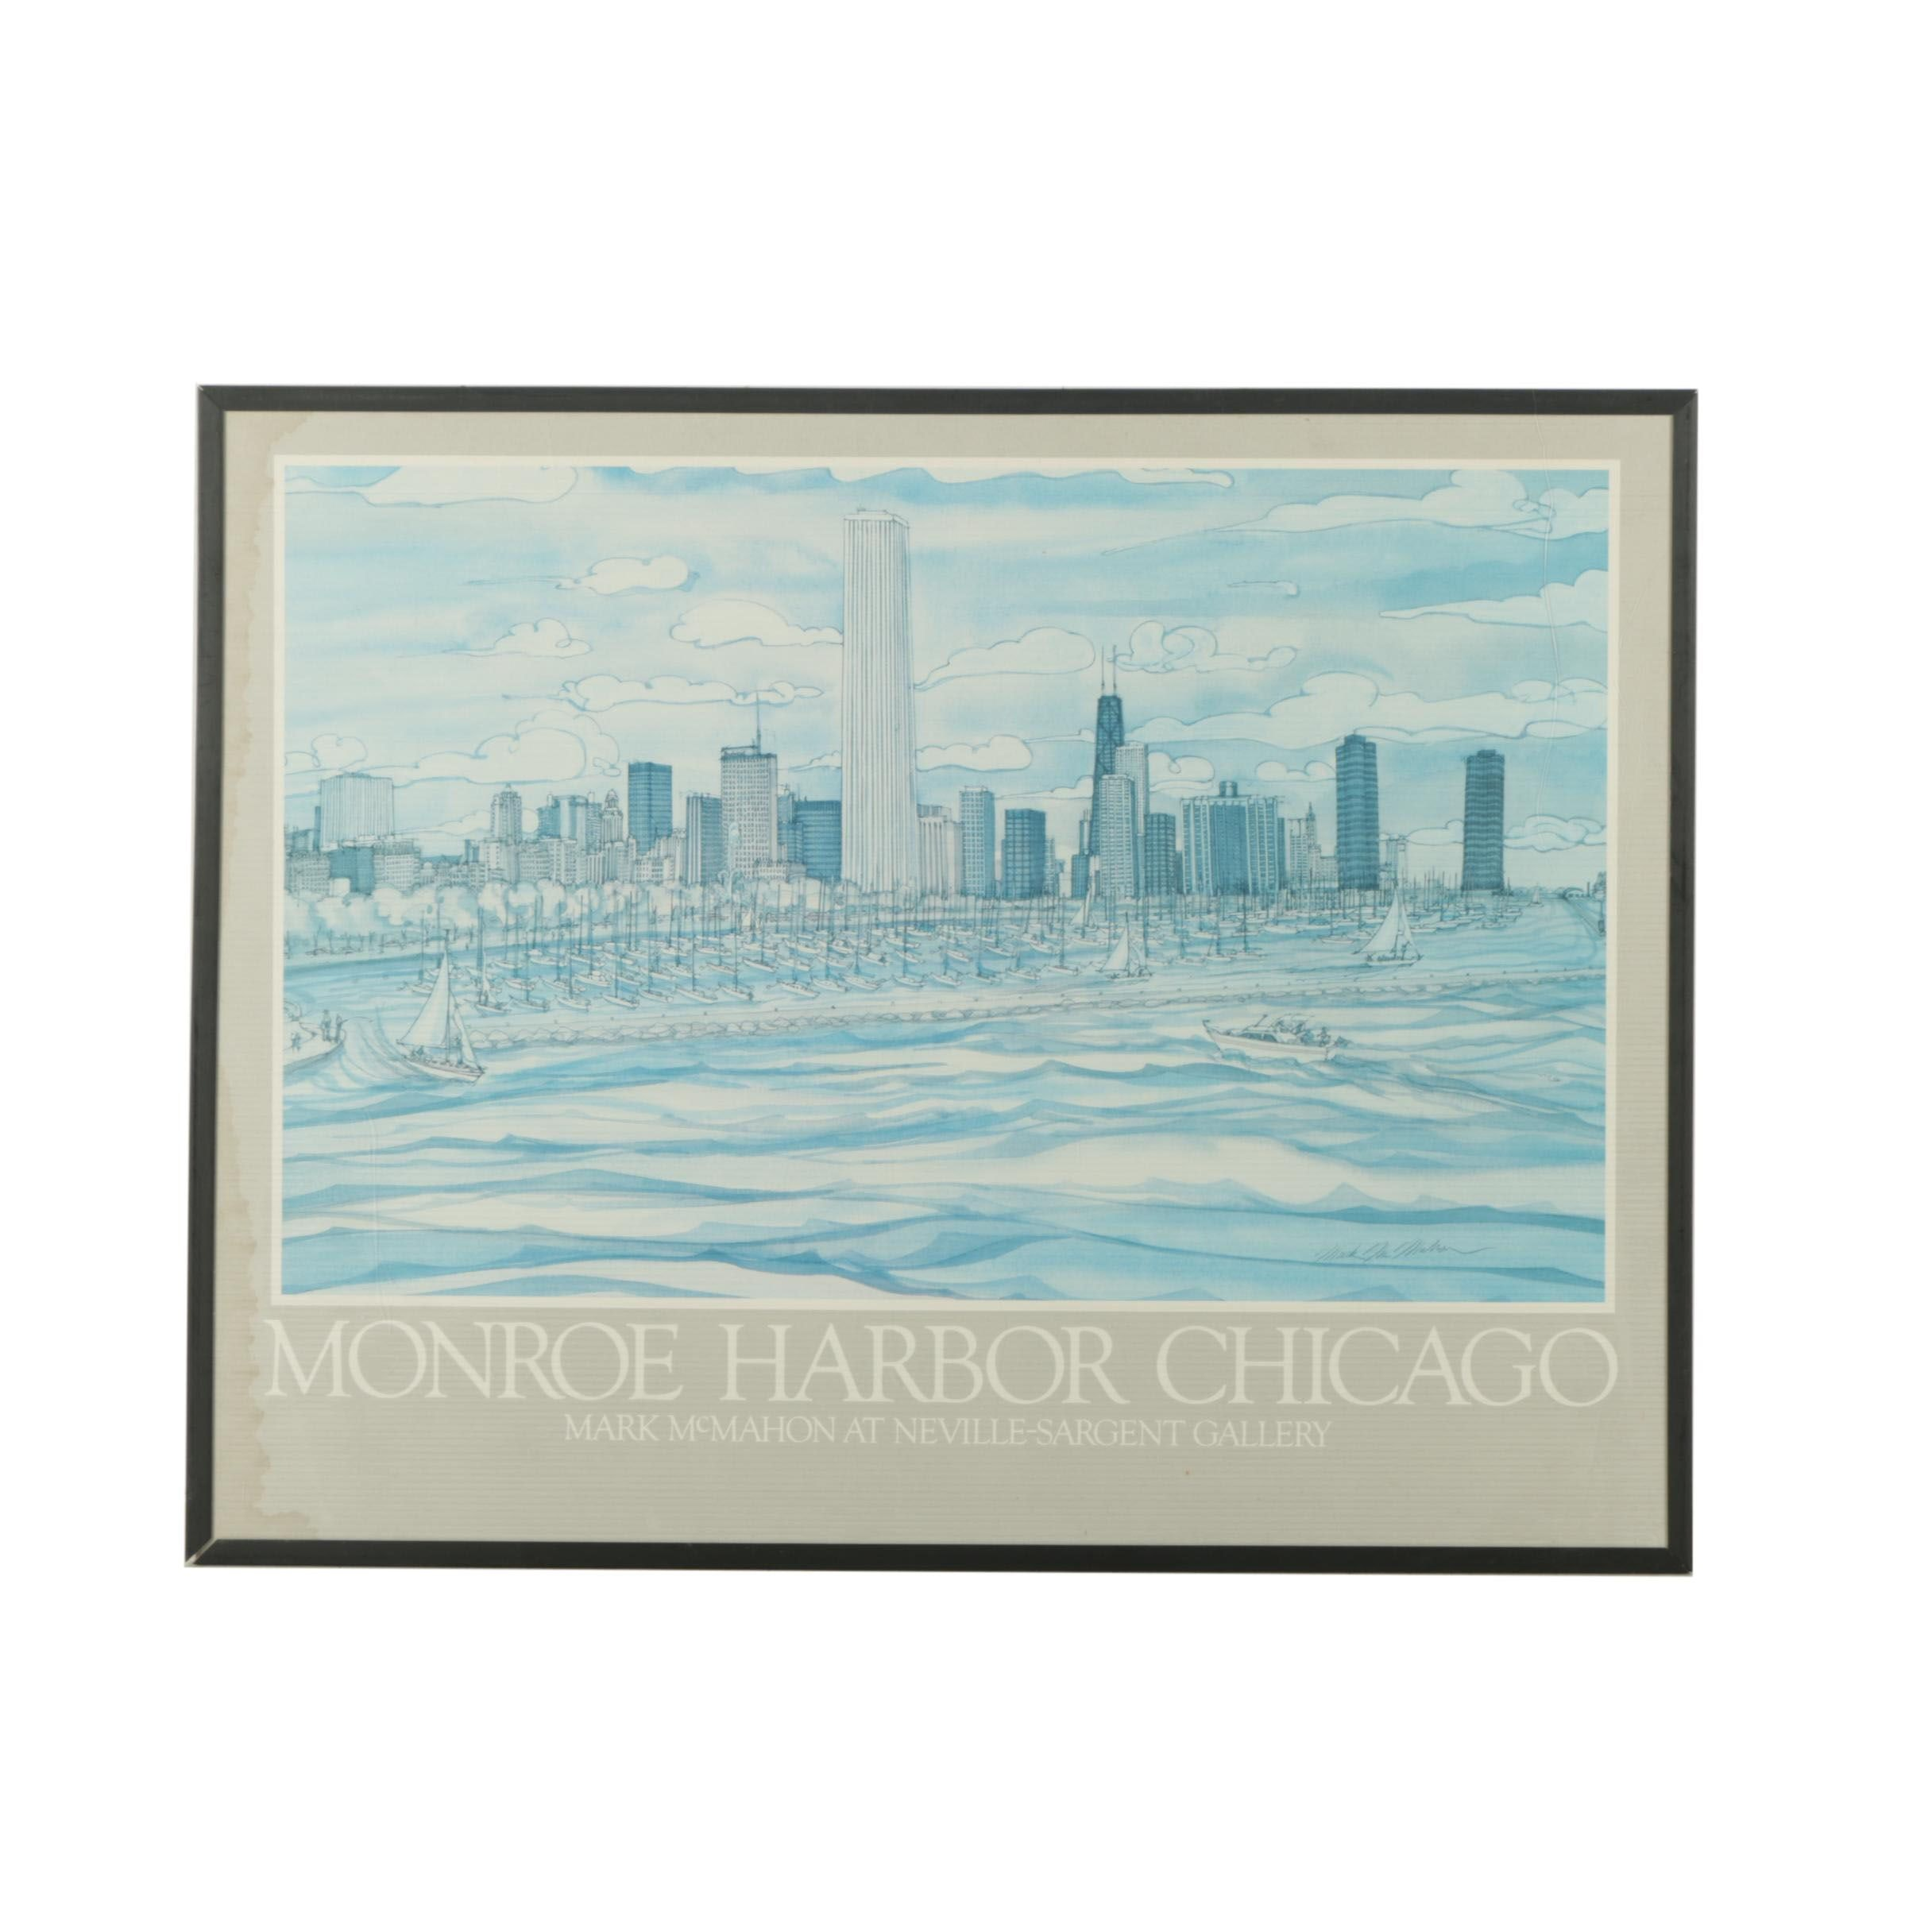 """Neville-Sargent Exhibition Poster After Mark McMahon's """"Monroe Harbor Chicago"""""""